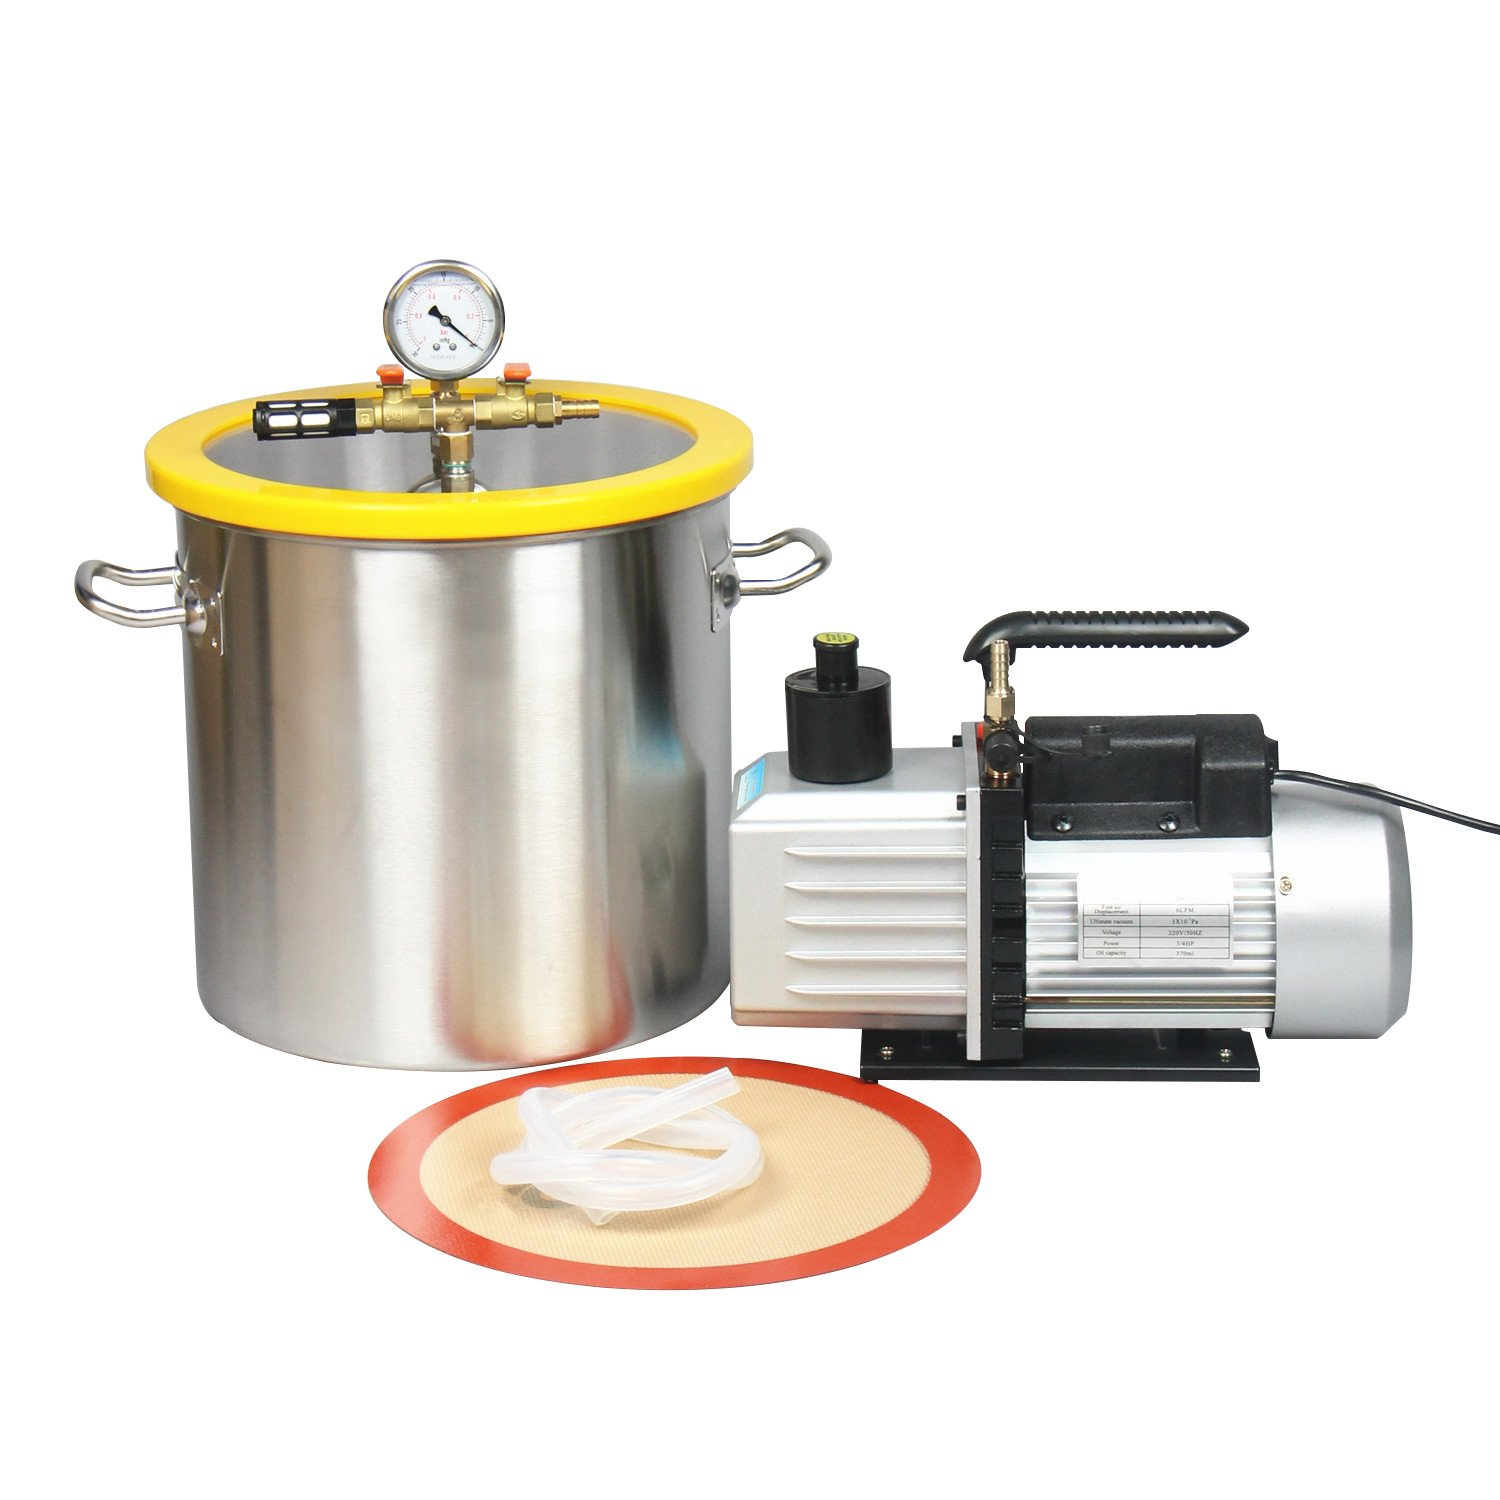 Hydrion Scientific 5 Gallon Vacuum Degassing Chamber Kit with 2 stage 7CFM Pump - Not for Wood Stabilizing by Hydrion Scientific